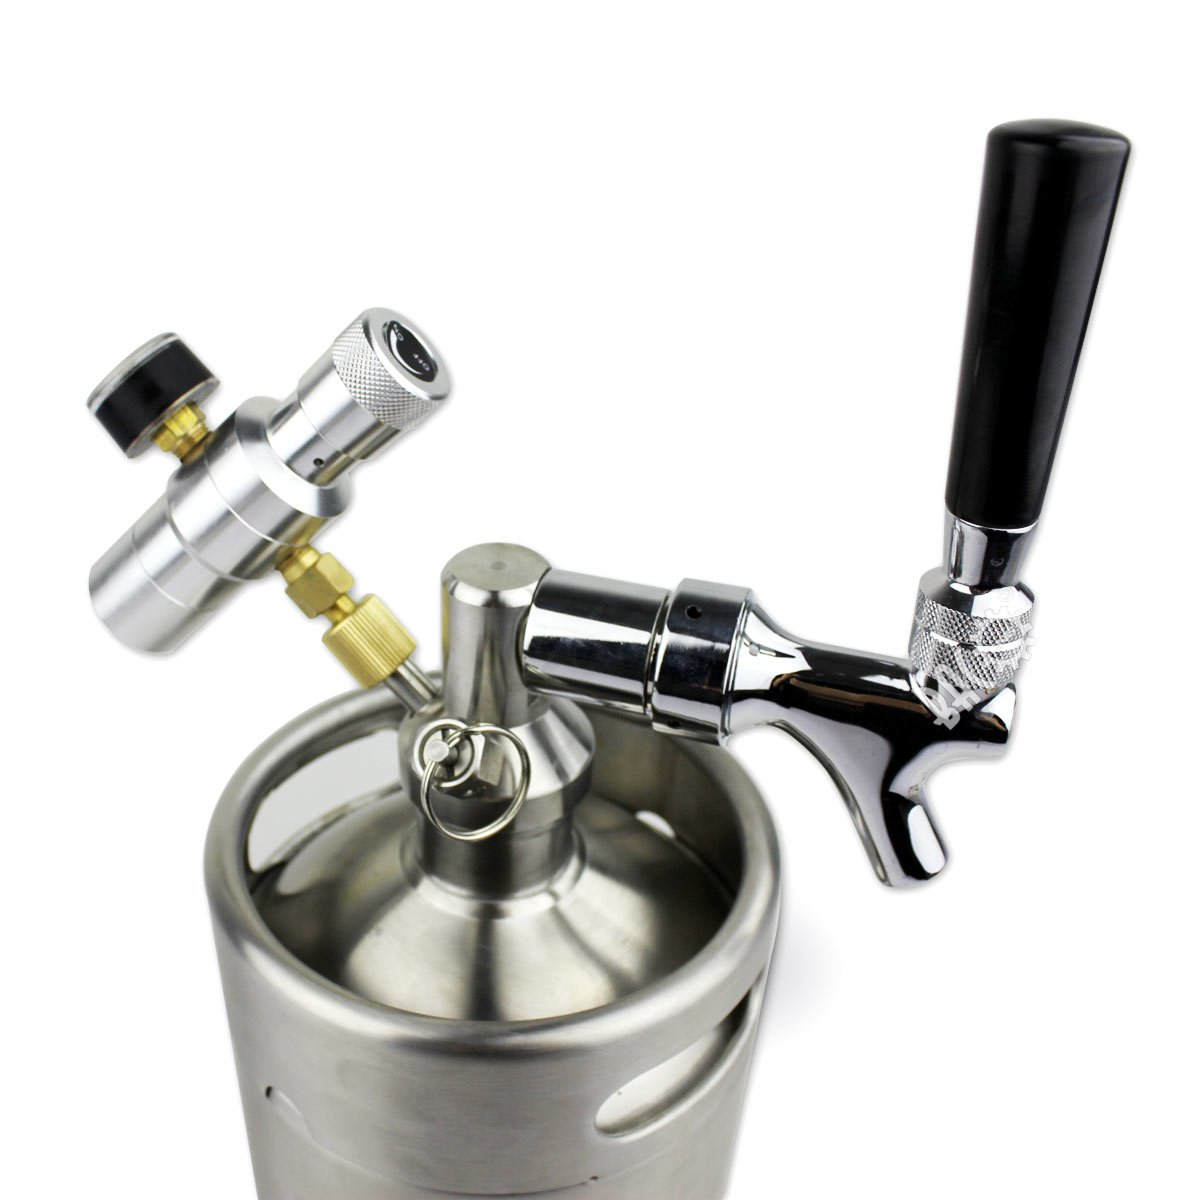 BACOENG 128 Ounce Pressurized Keg Growler, Kegerator for Home Brew Beer with Updated CO2 Regulator by BACOENG (Image #4)